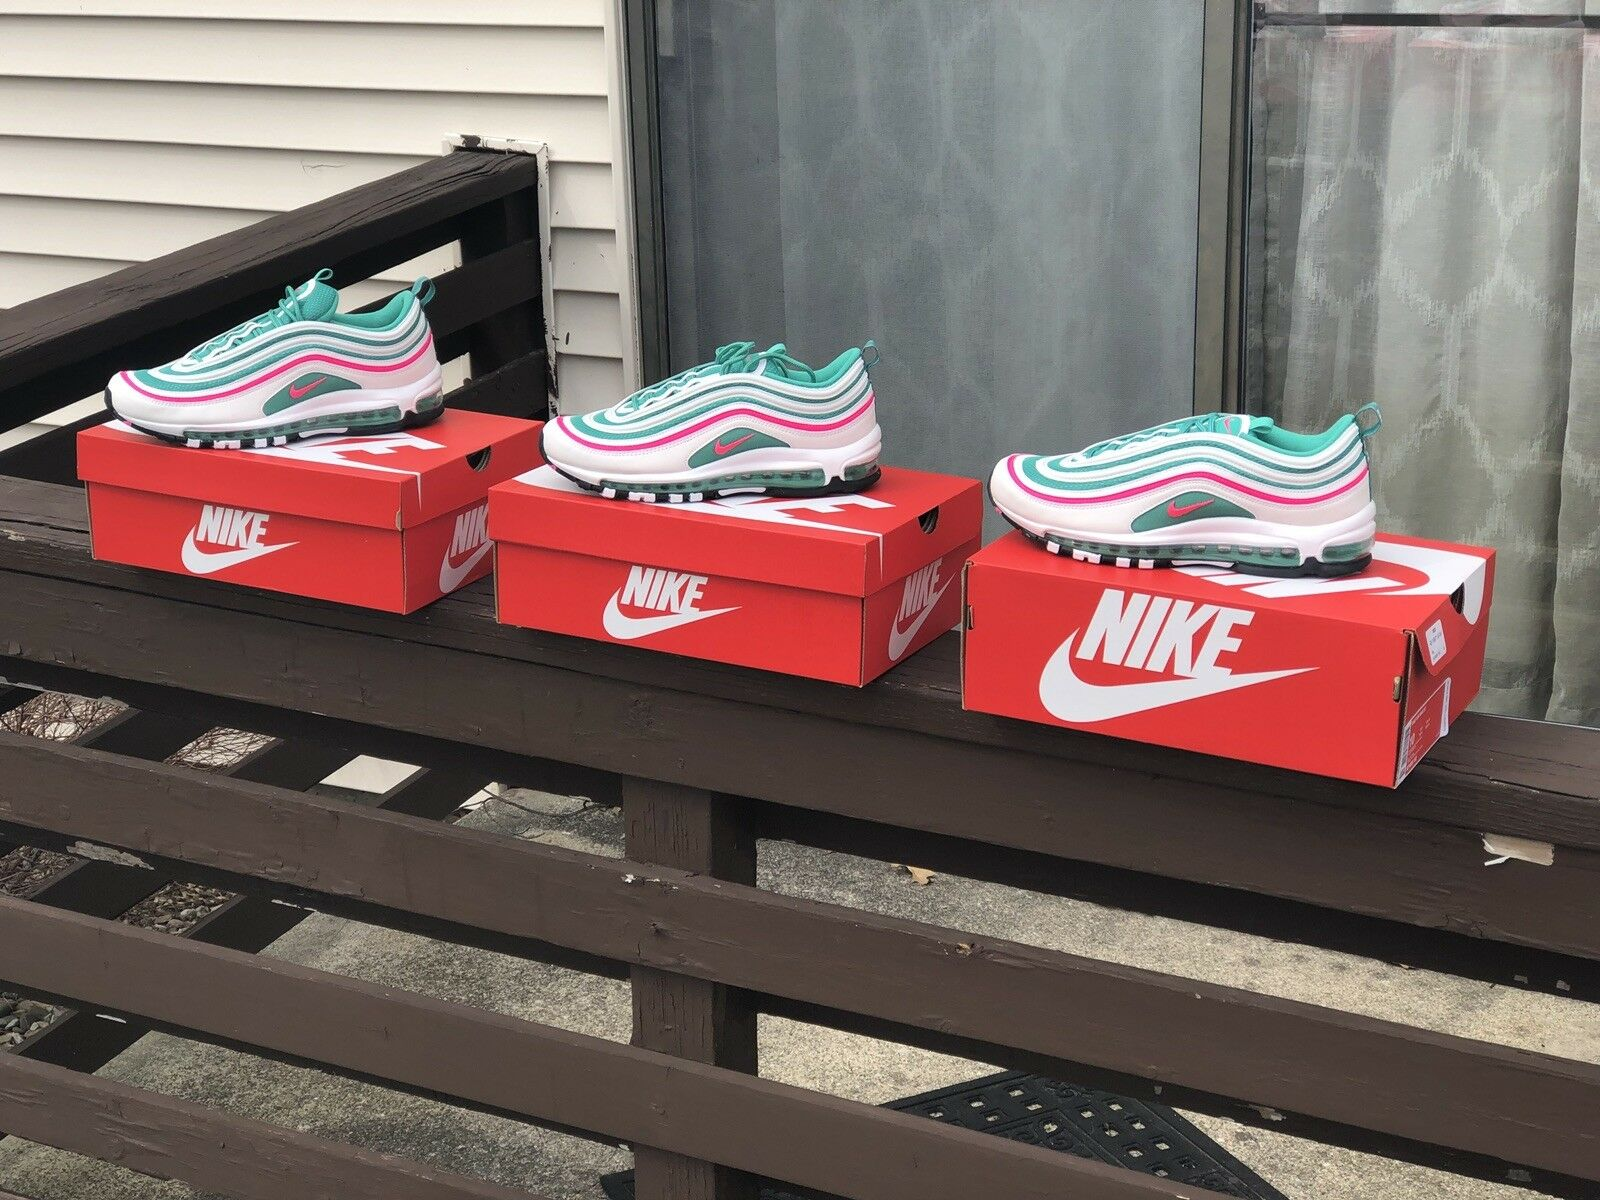 2018 Nike Air Max 97 South Beach Miami OG QS 921826-102 Sz 10, Yeezy boost 350